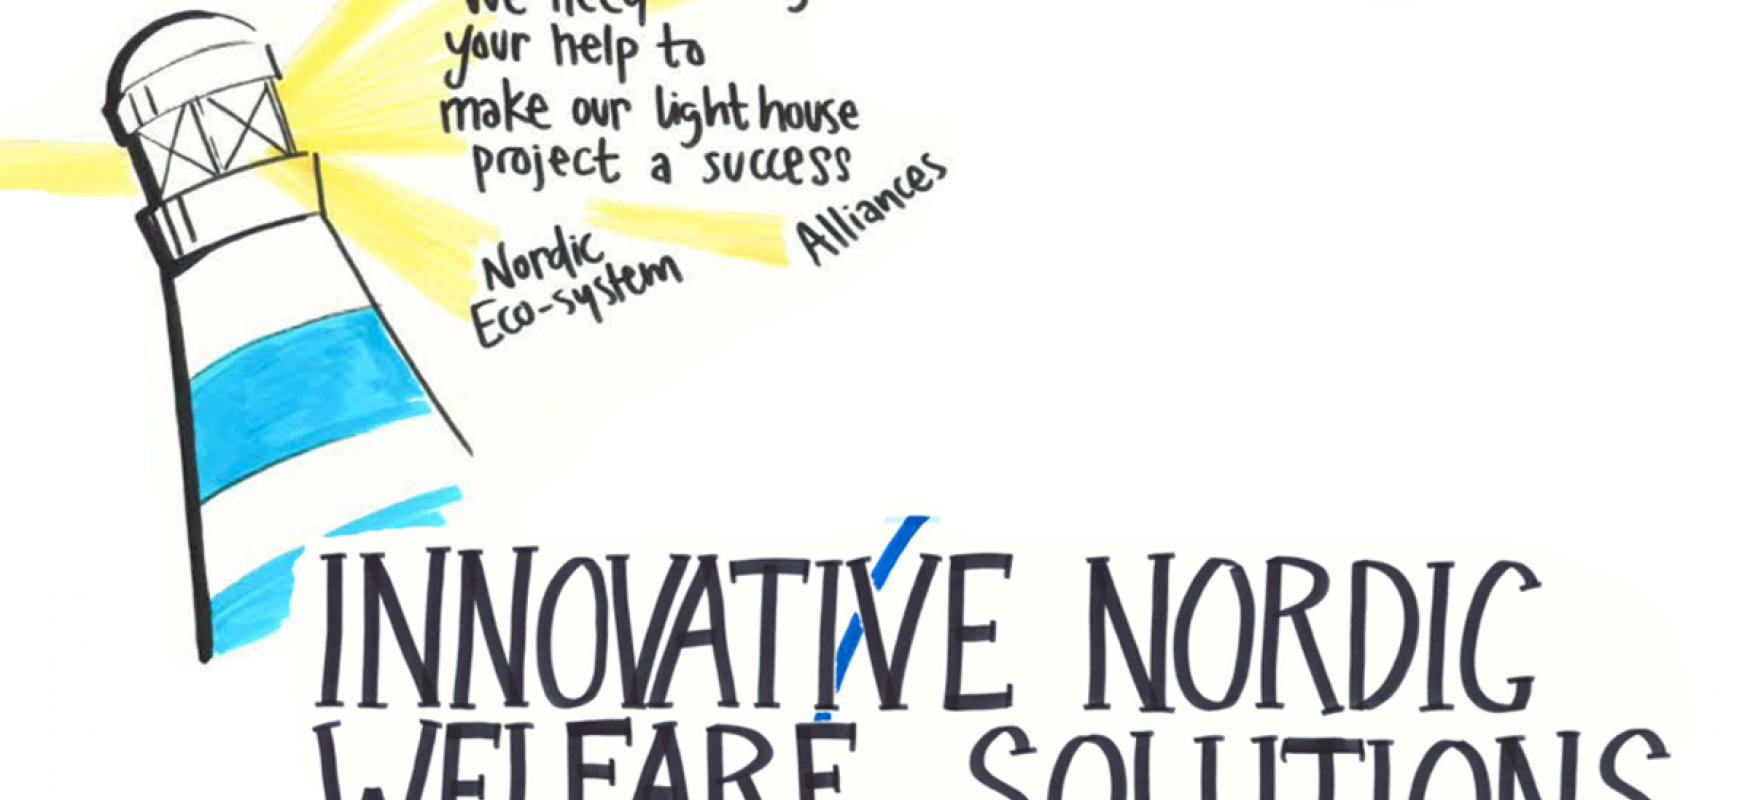 "Drawing showing the text ""Innovative Nordic Welfare Solutions"", a lighthouse and Nordic Innovation's old logo."